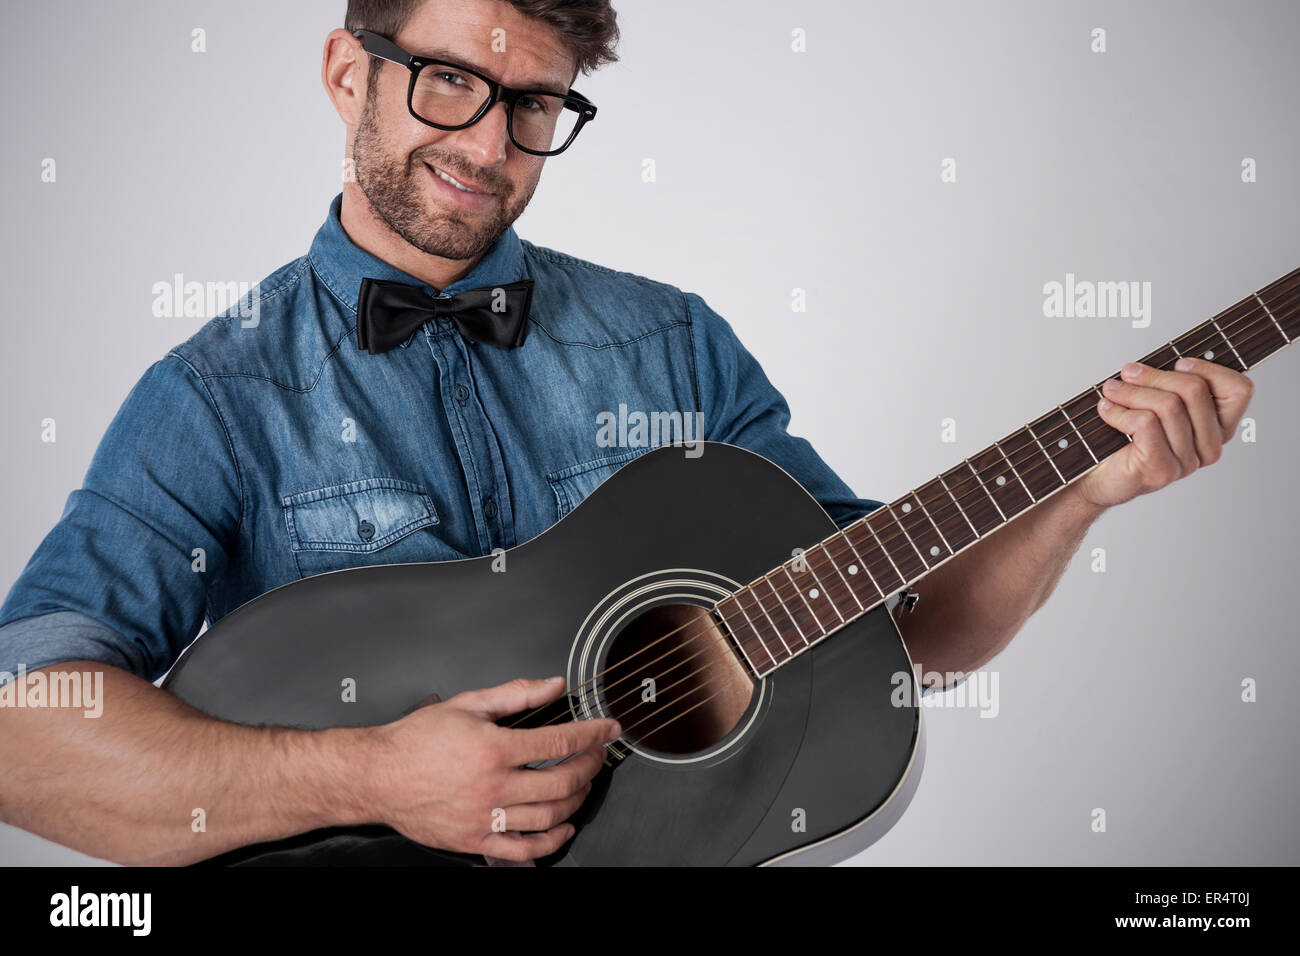 Playing a guitar is a symbol of a romantic man. Debica, Poland - Stock Image